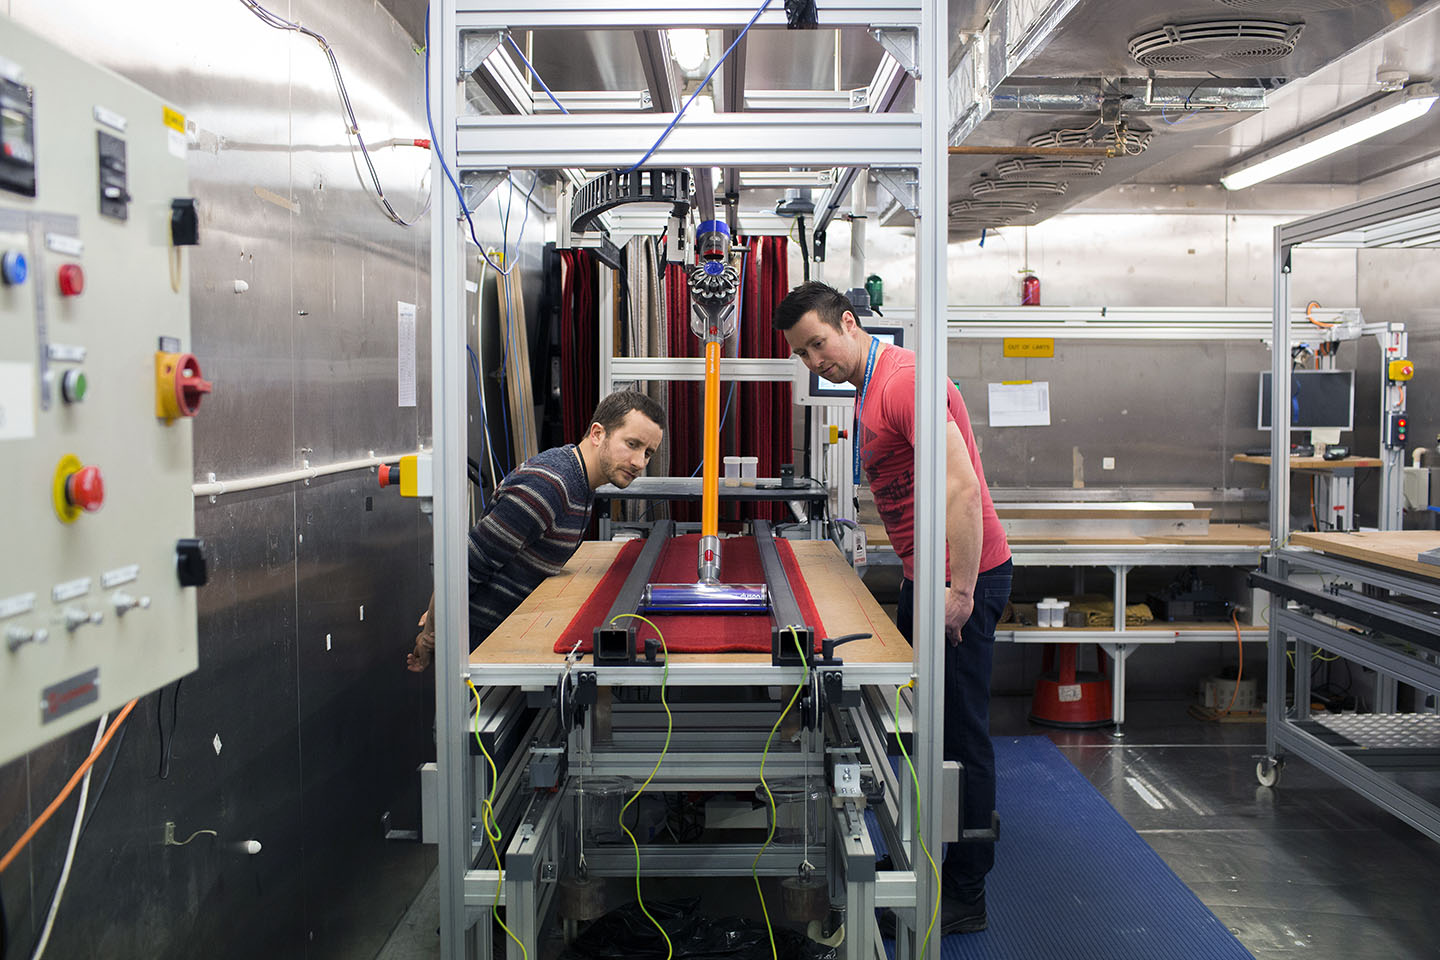 The pick up chamber, where the Dyson vacuum is tested.